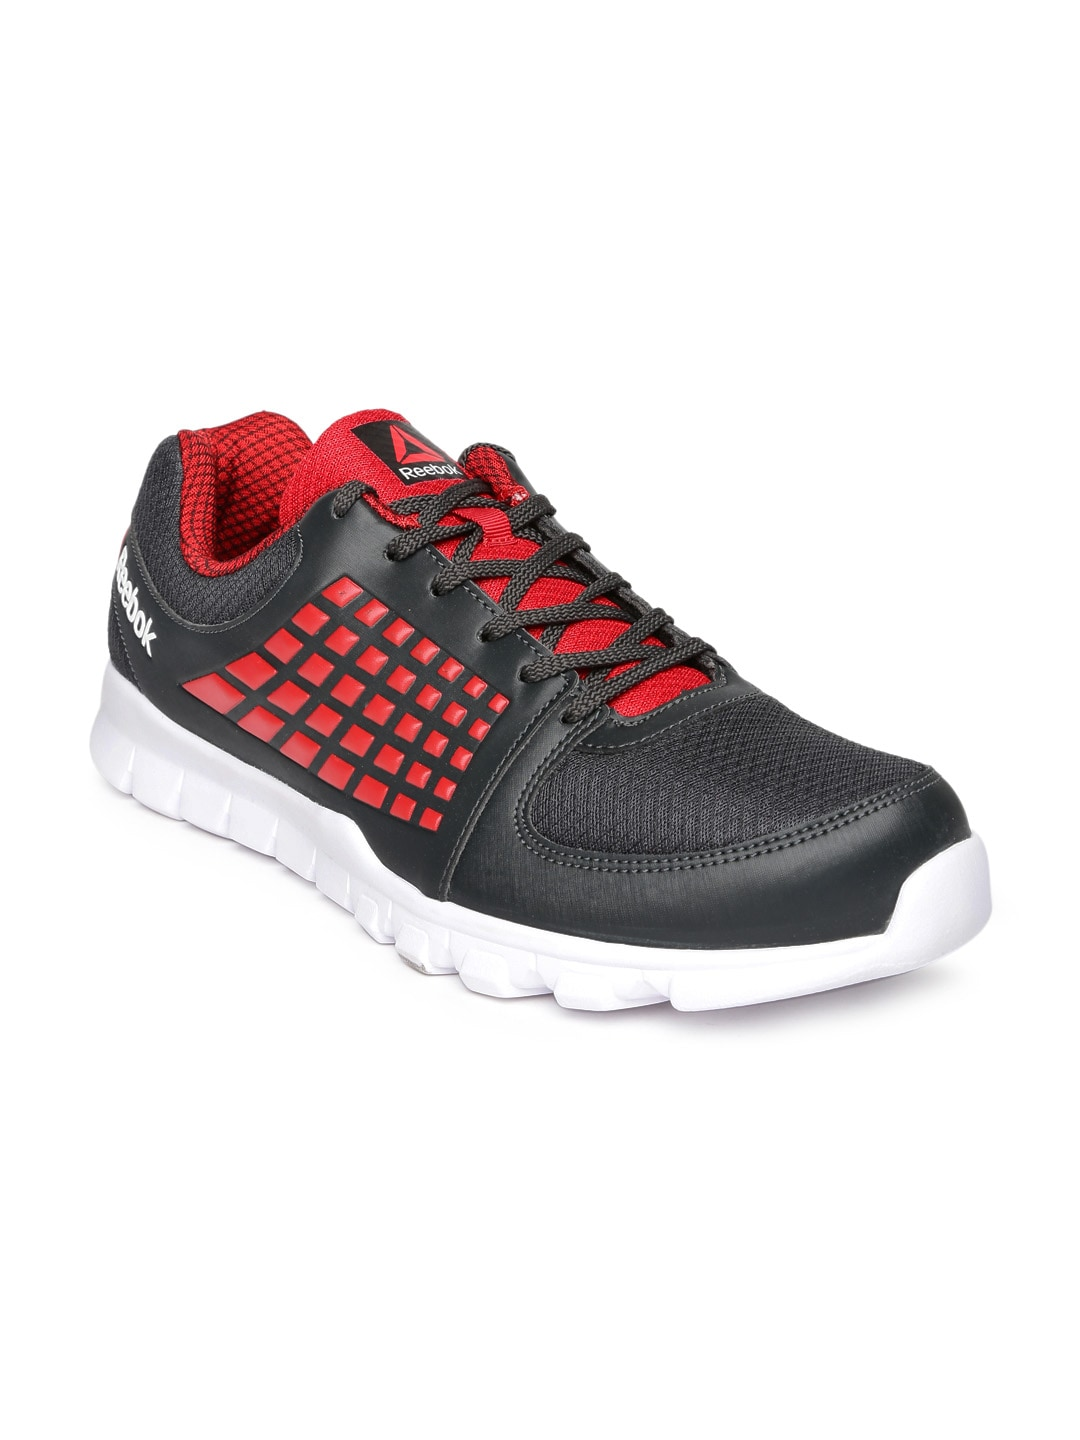 e16d88b3320ab Black Reebok Shoe - Buy Black Reebok Shoe online in India